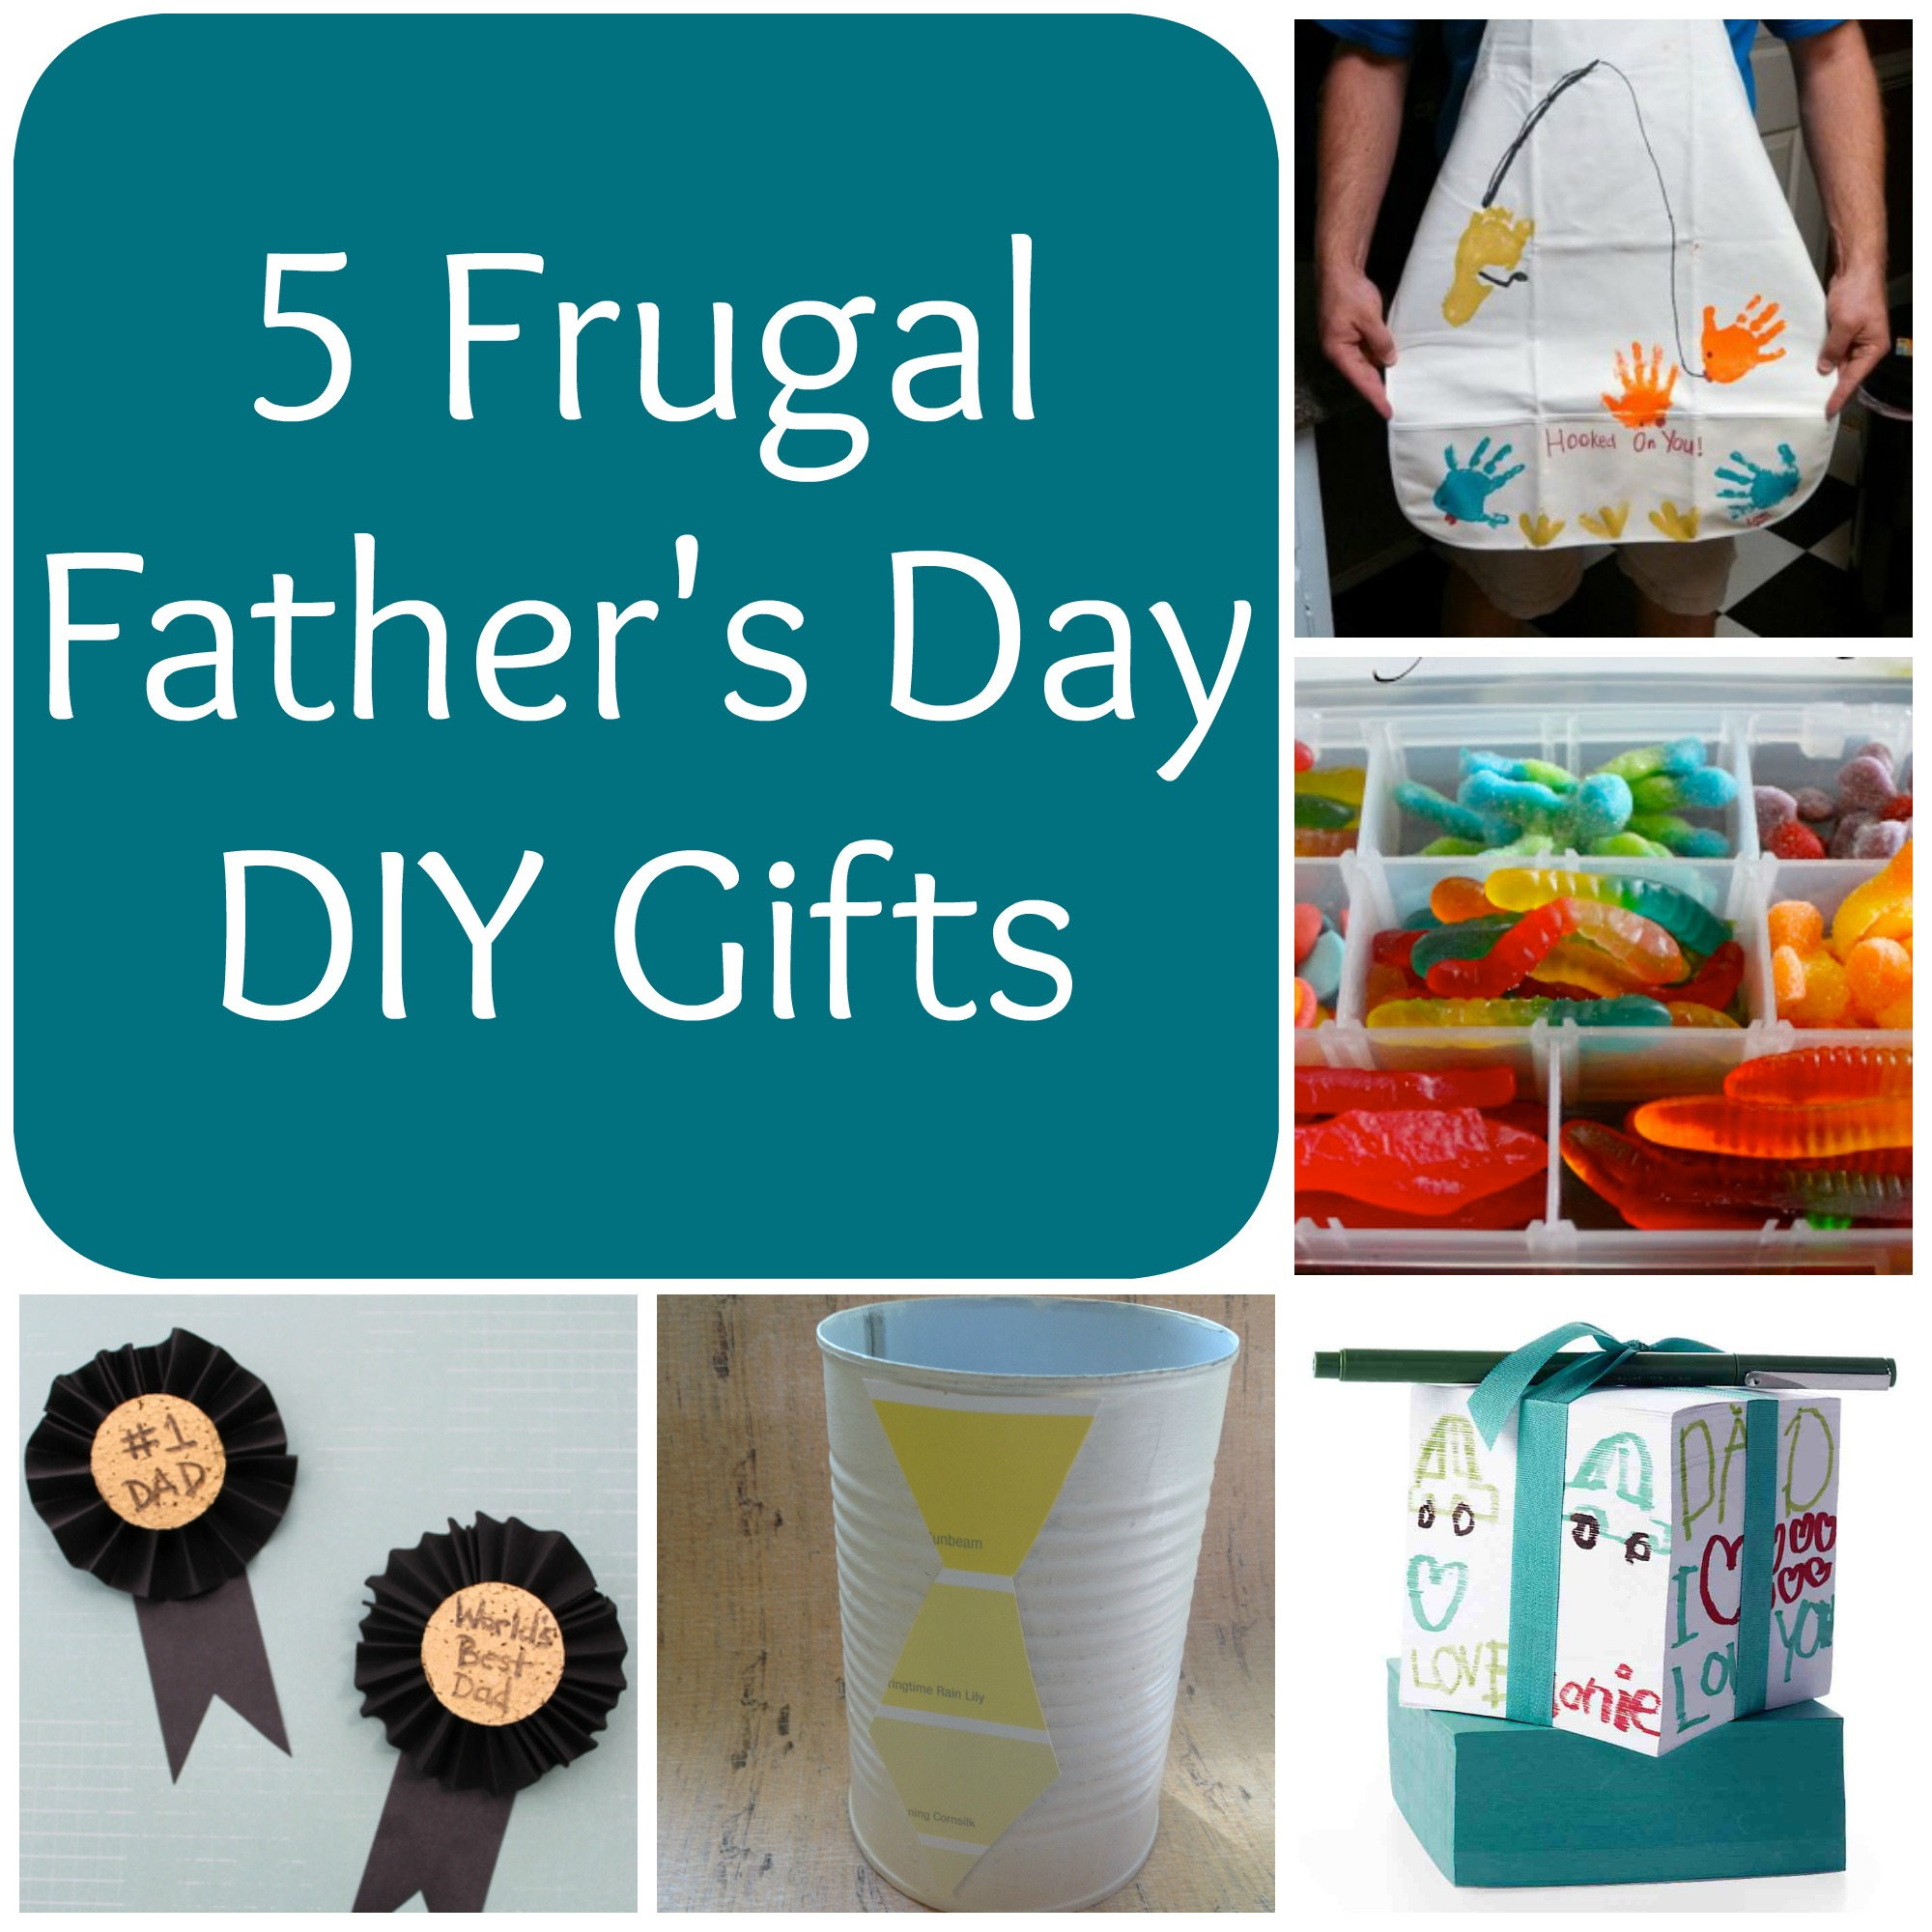 5 Frugal Fathers Day DIY Gifts